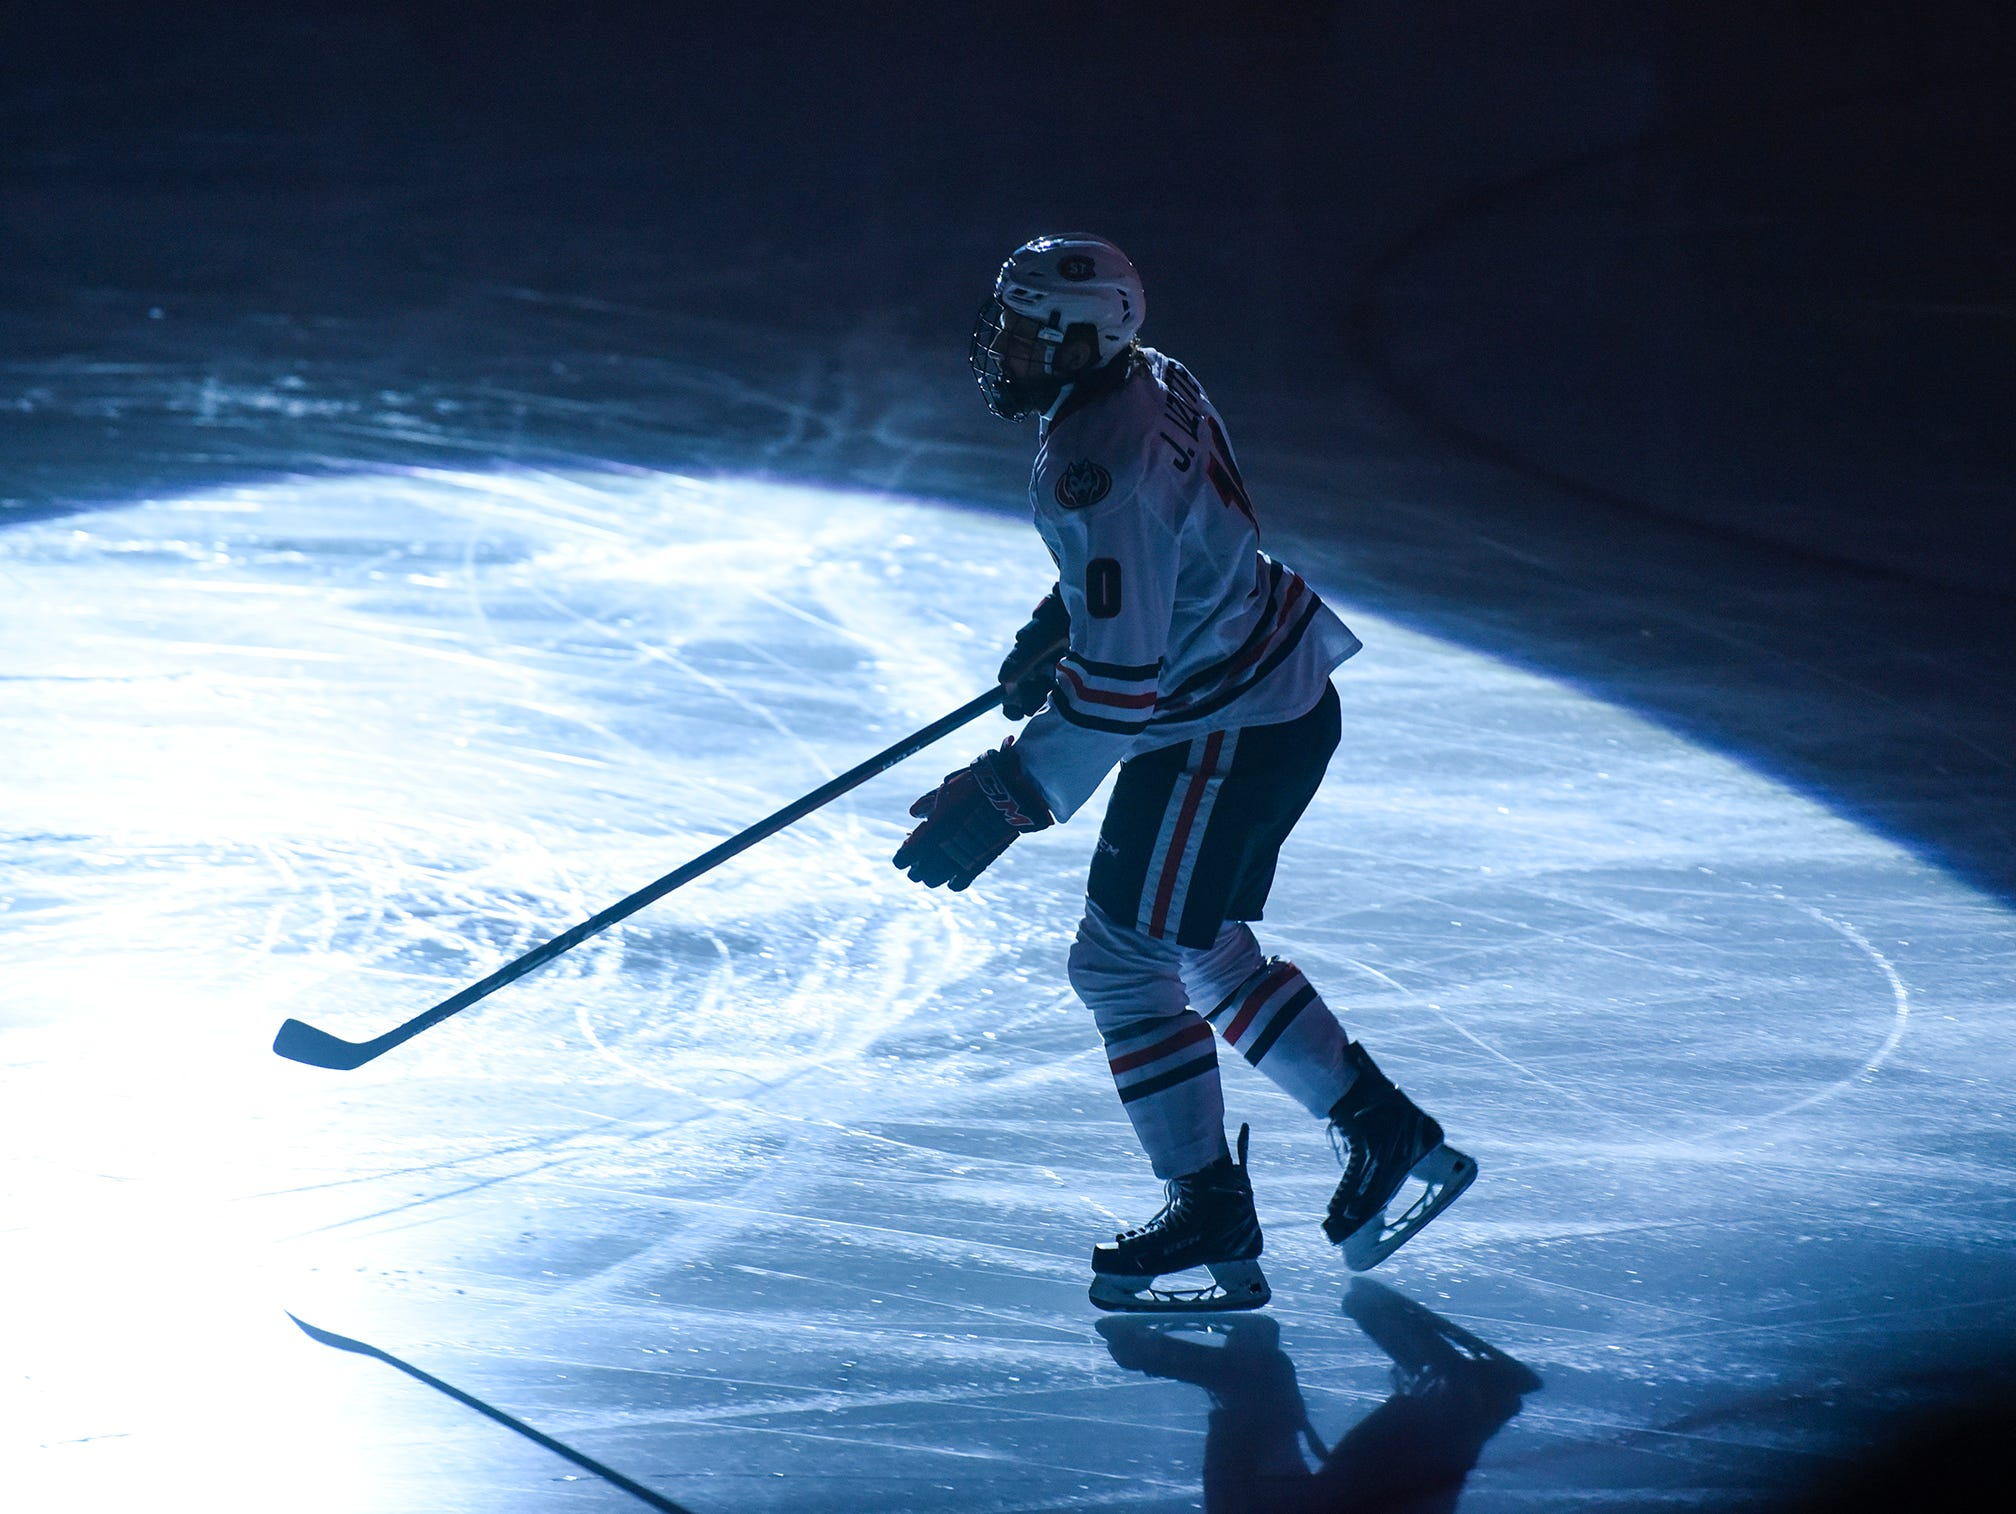 St. Cloud State's Jon Lizotte is introduced before the start of the Friday, Nov. 16, game against Bemidji State at the Herb Brooks National Hockey Center in St. Cloud.